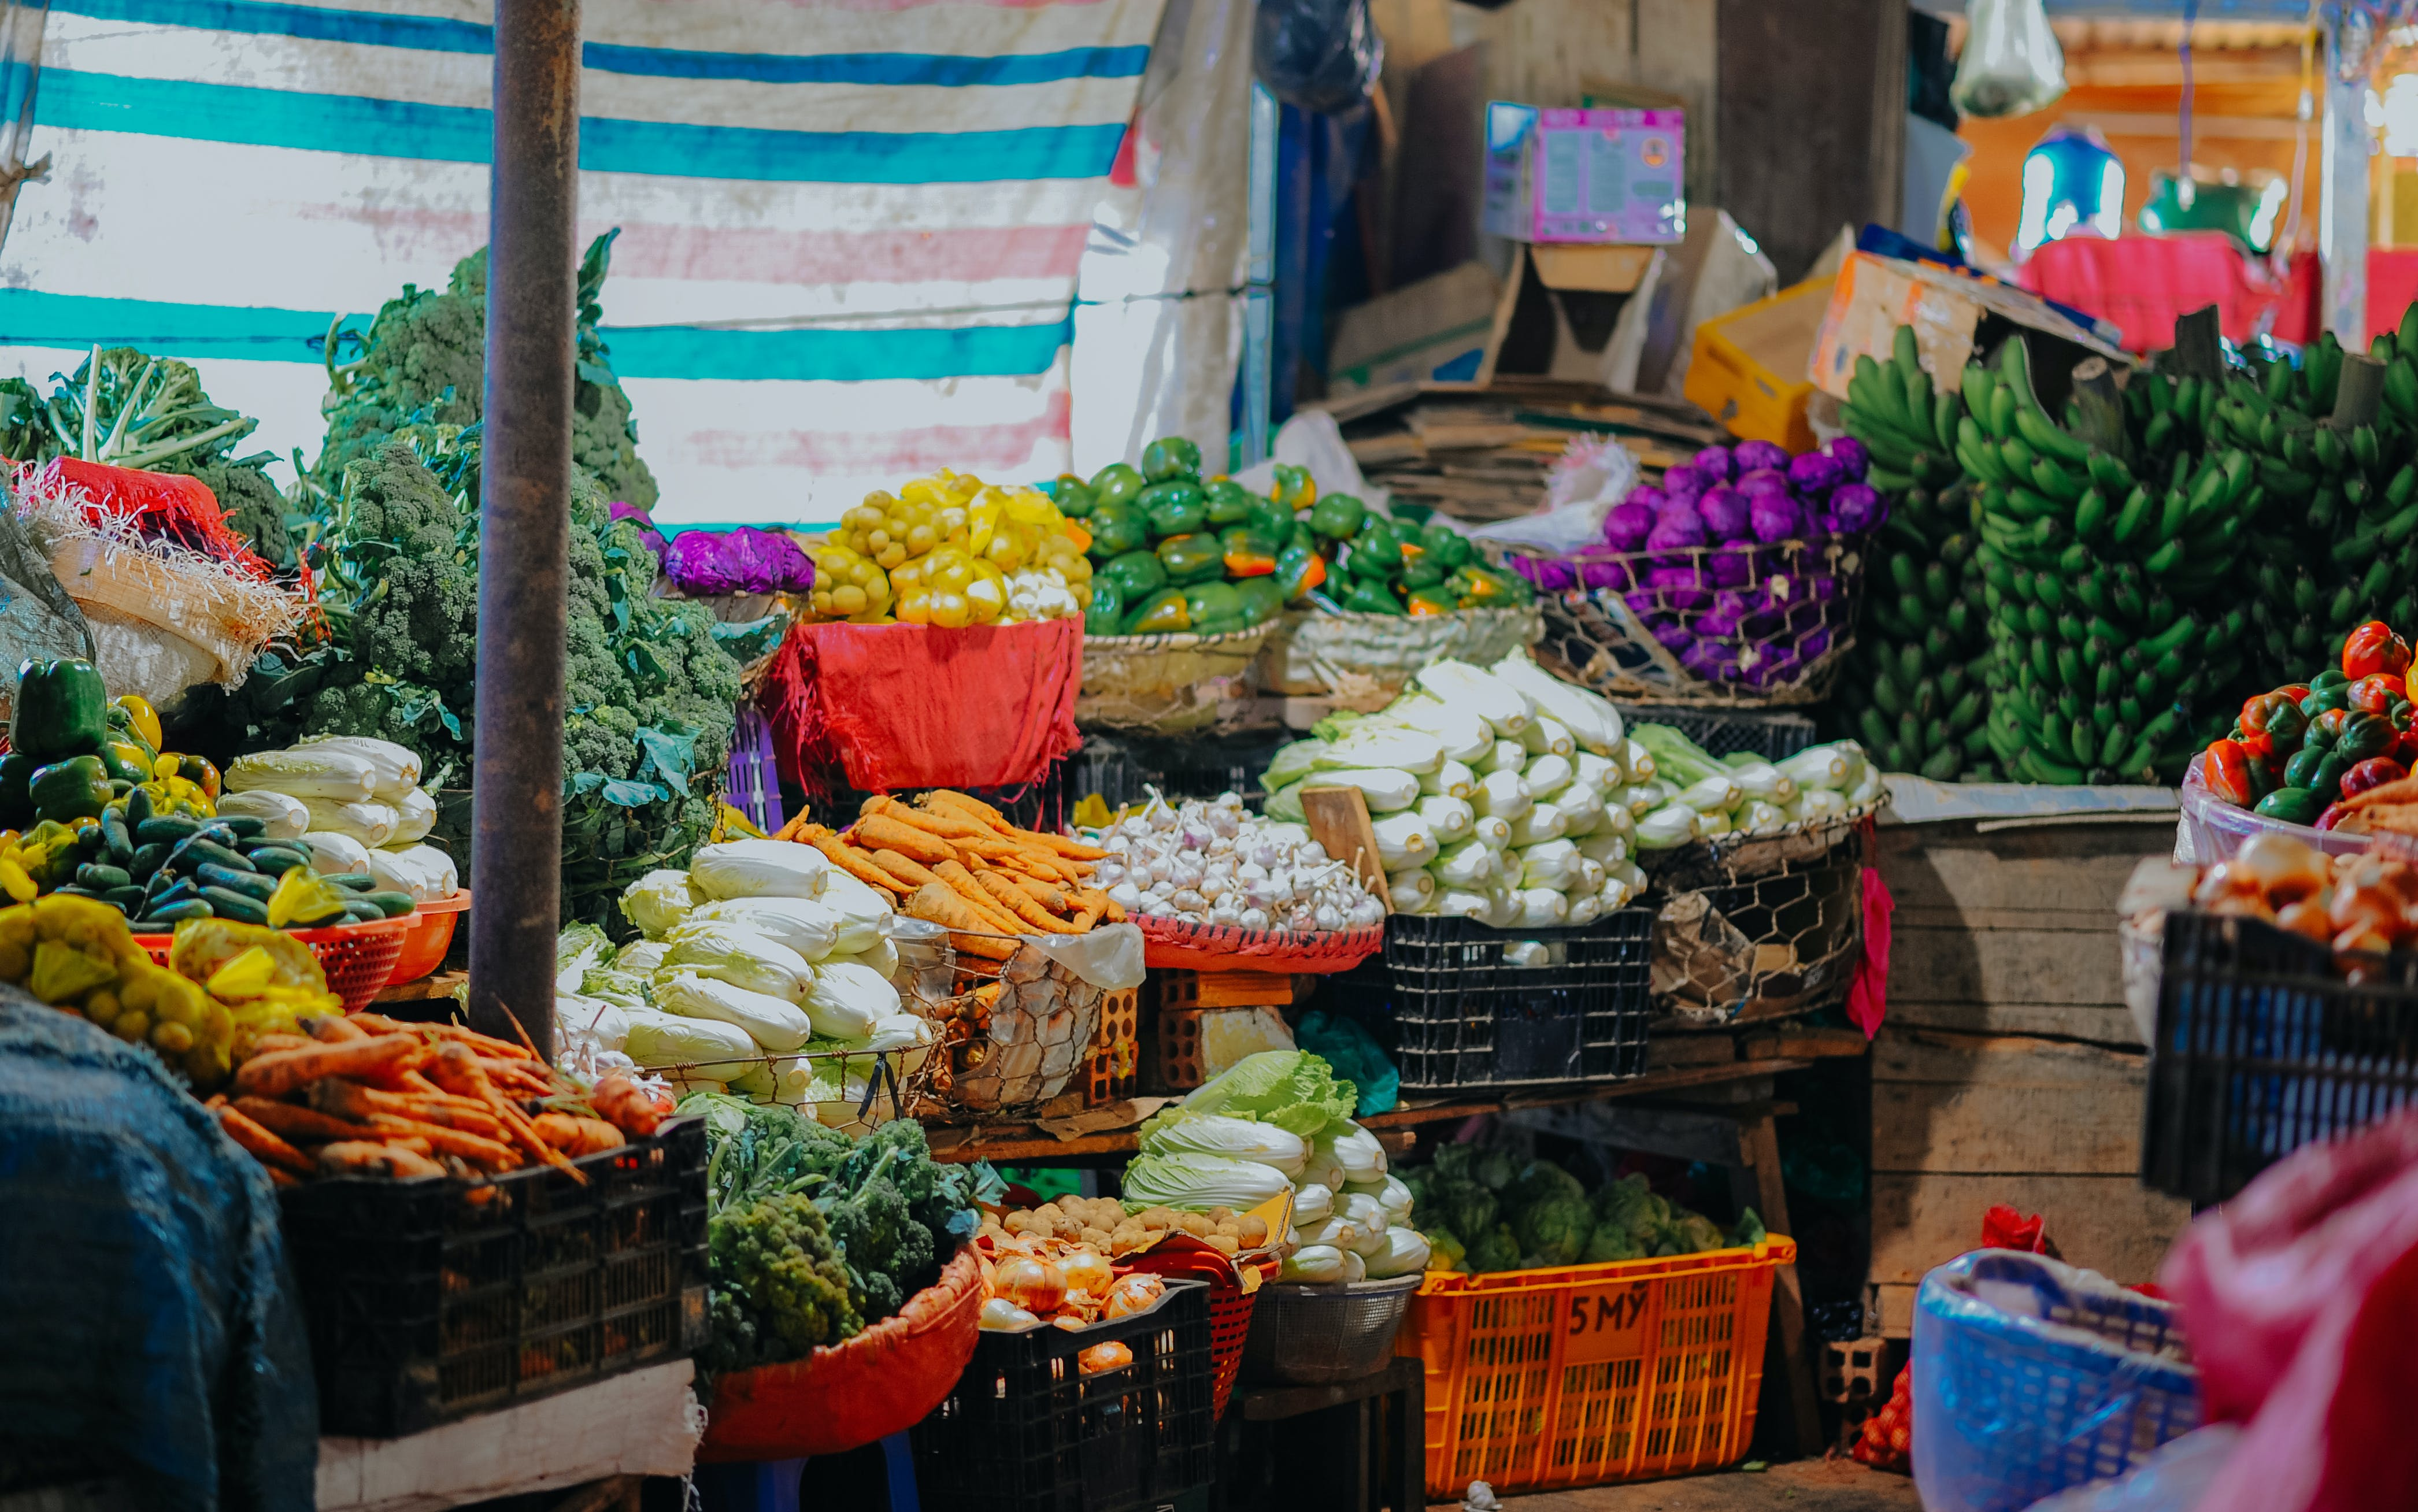 Assorted Vegetables On Crates